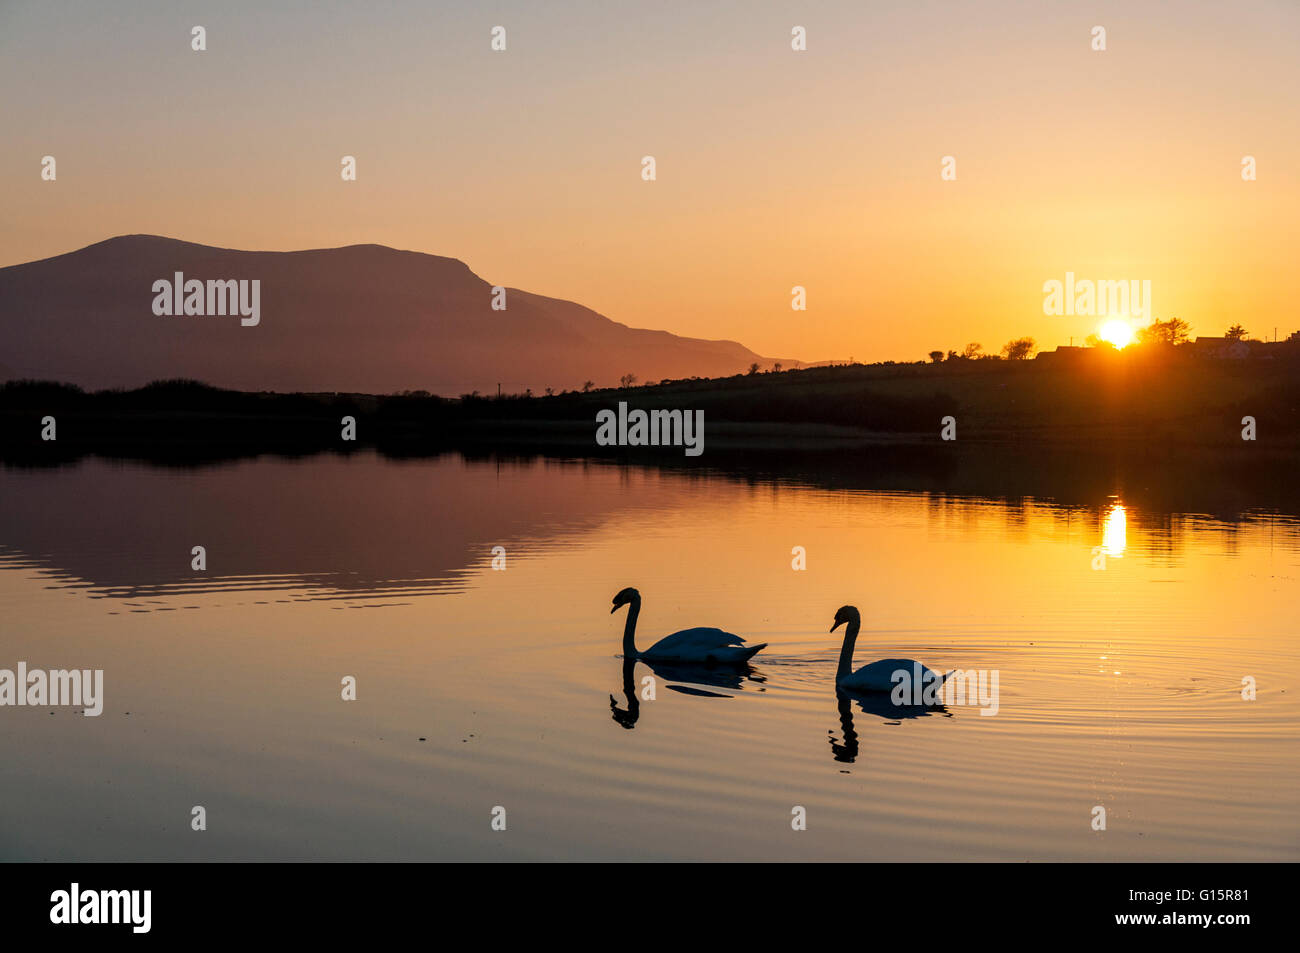 Swan Lake. Two swans on Lake Shanaghan, Ardara, County Donegal, Ireland - Stock Image